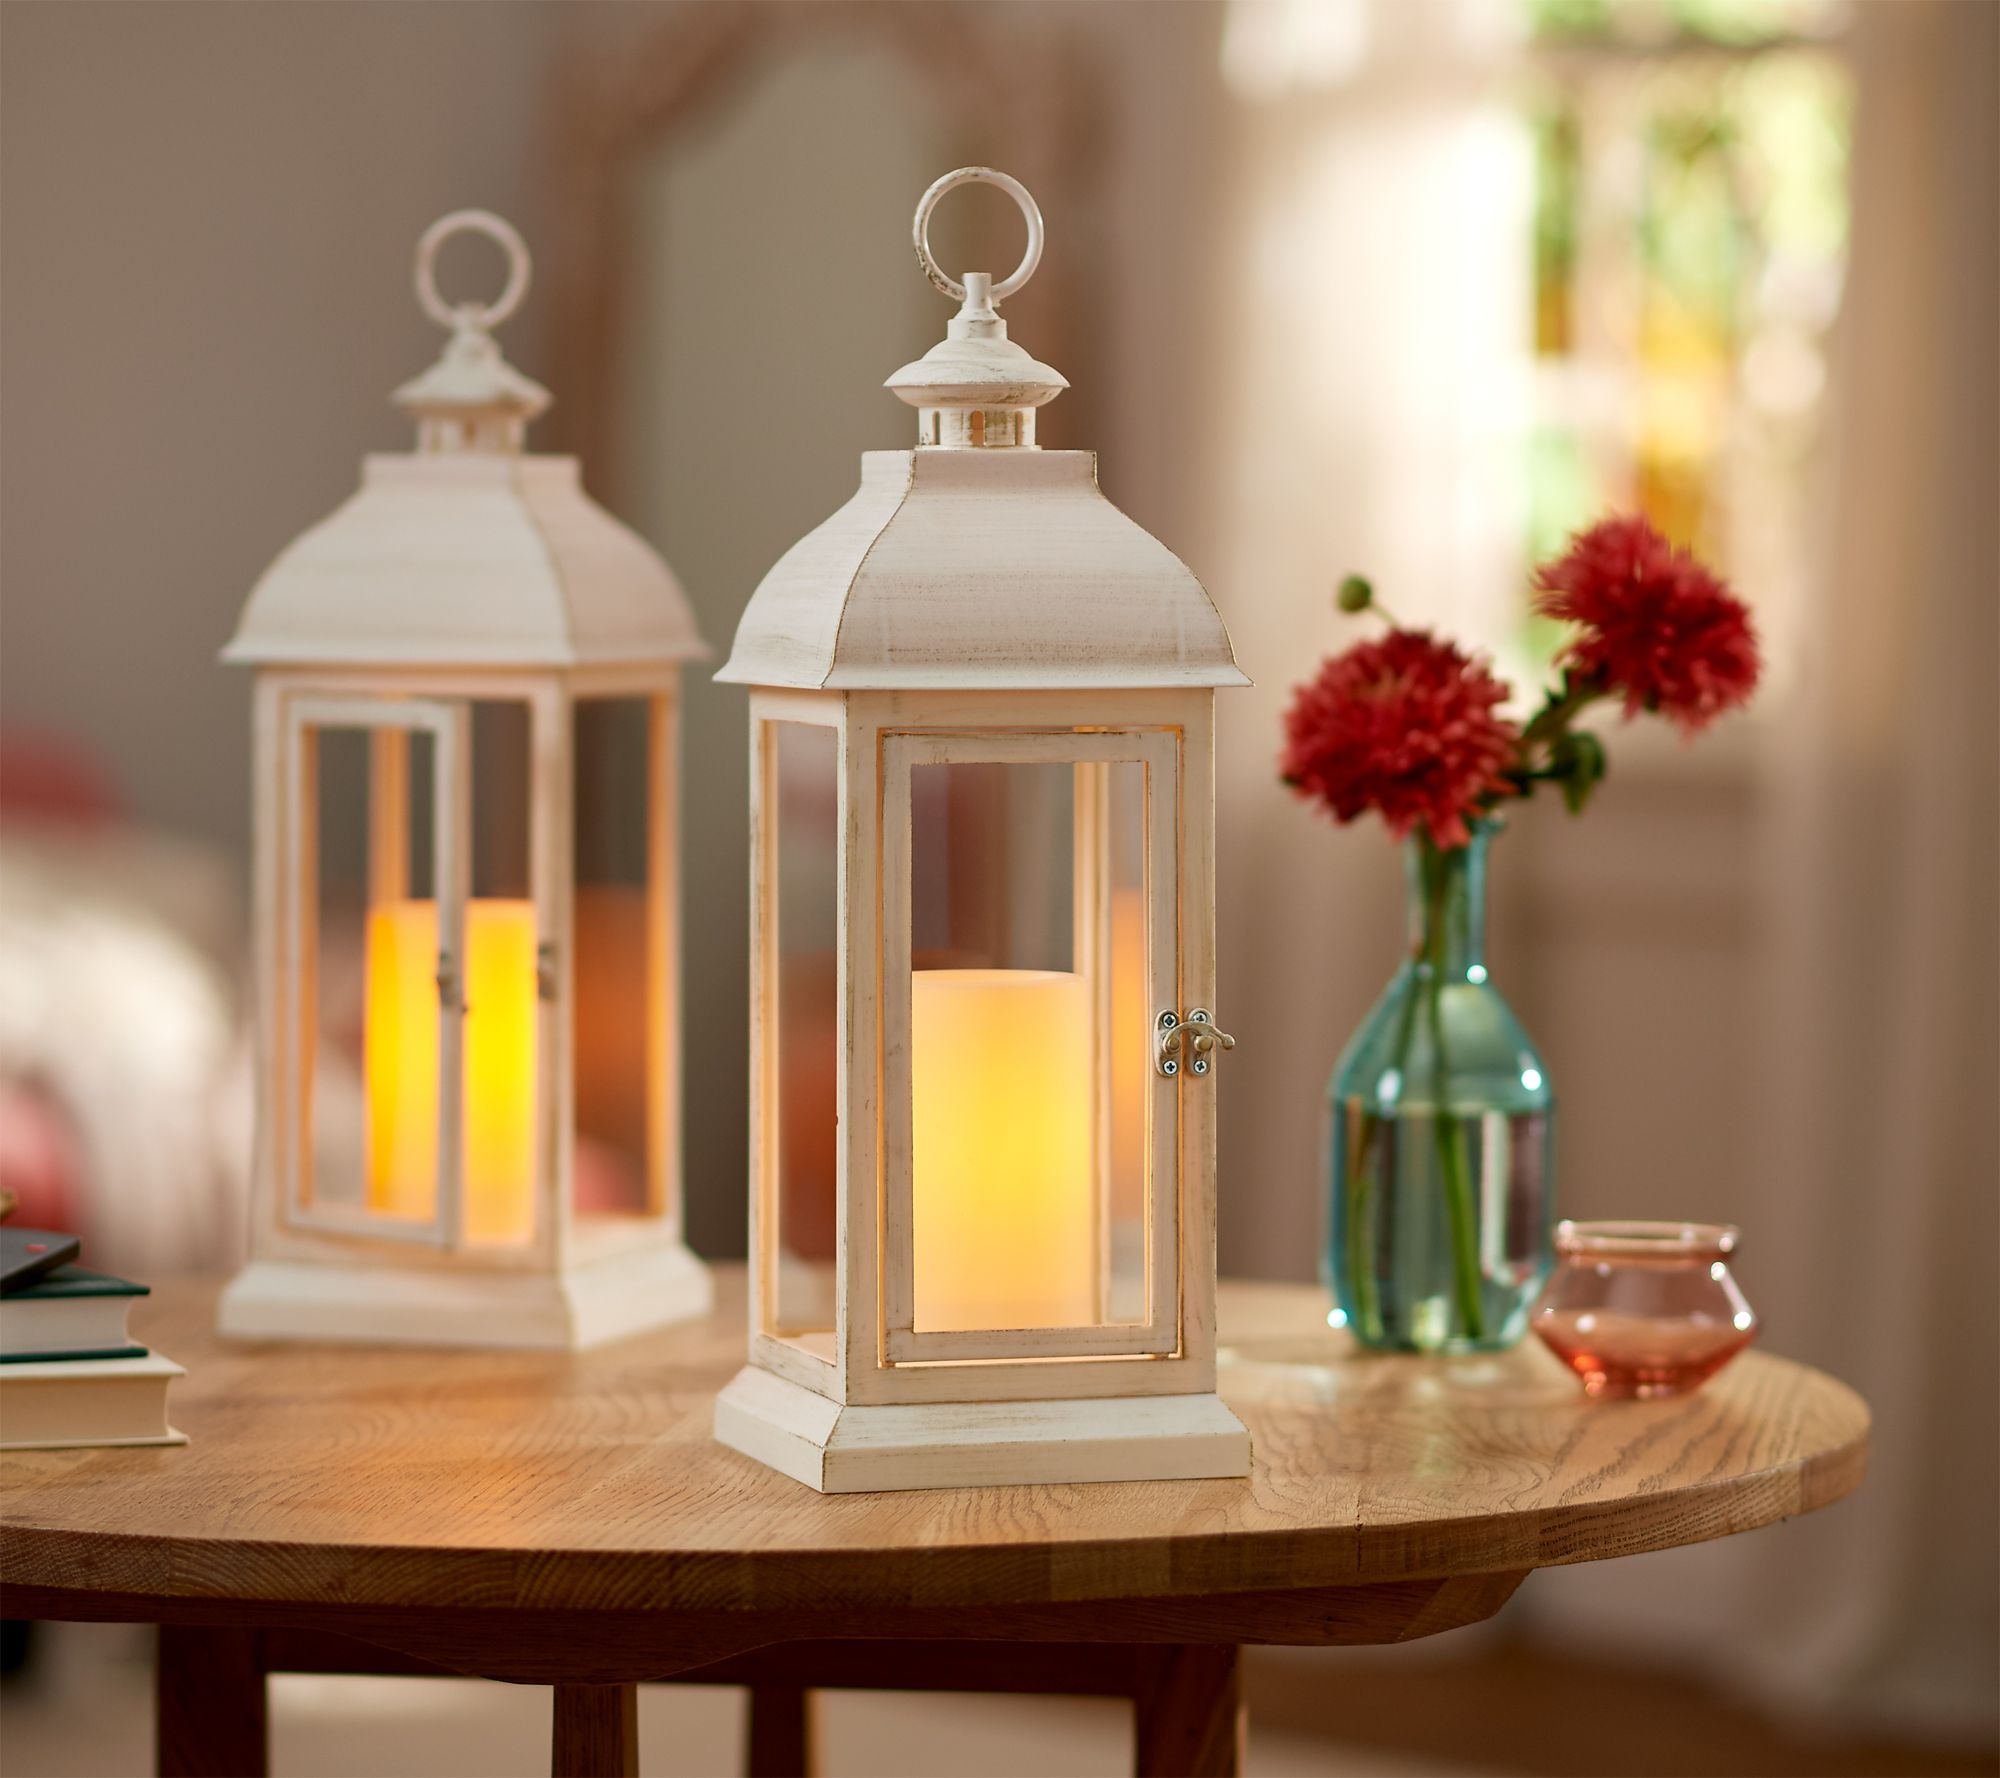 Qvc Candle Impressions Indoor Outdoor Set Of 2 15